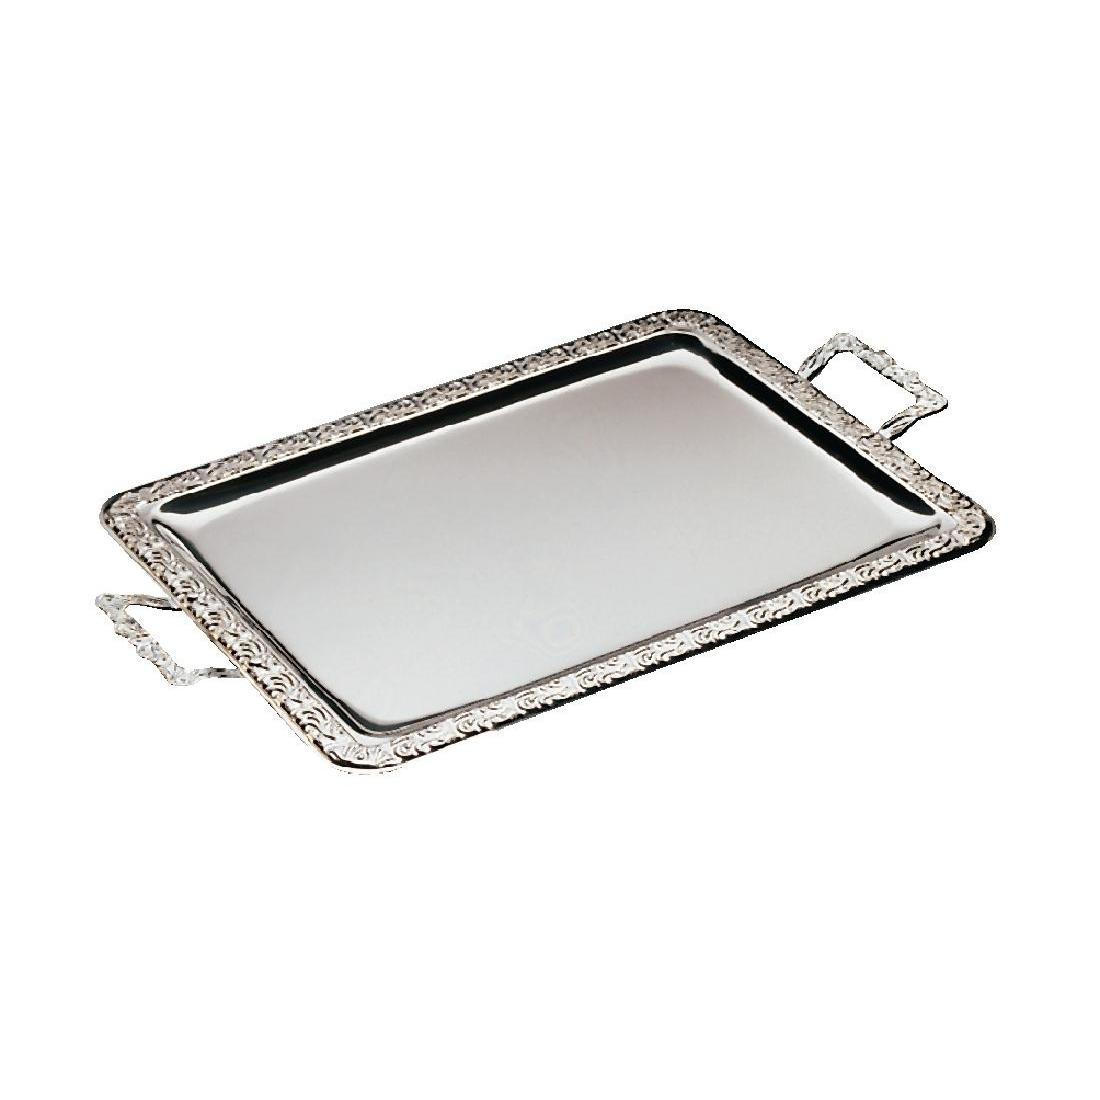 APS Stainless Steel Rectangular Handled Service Tray 600mm - Each - P004